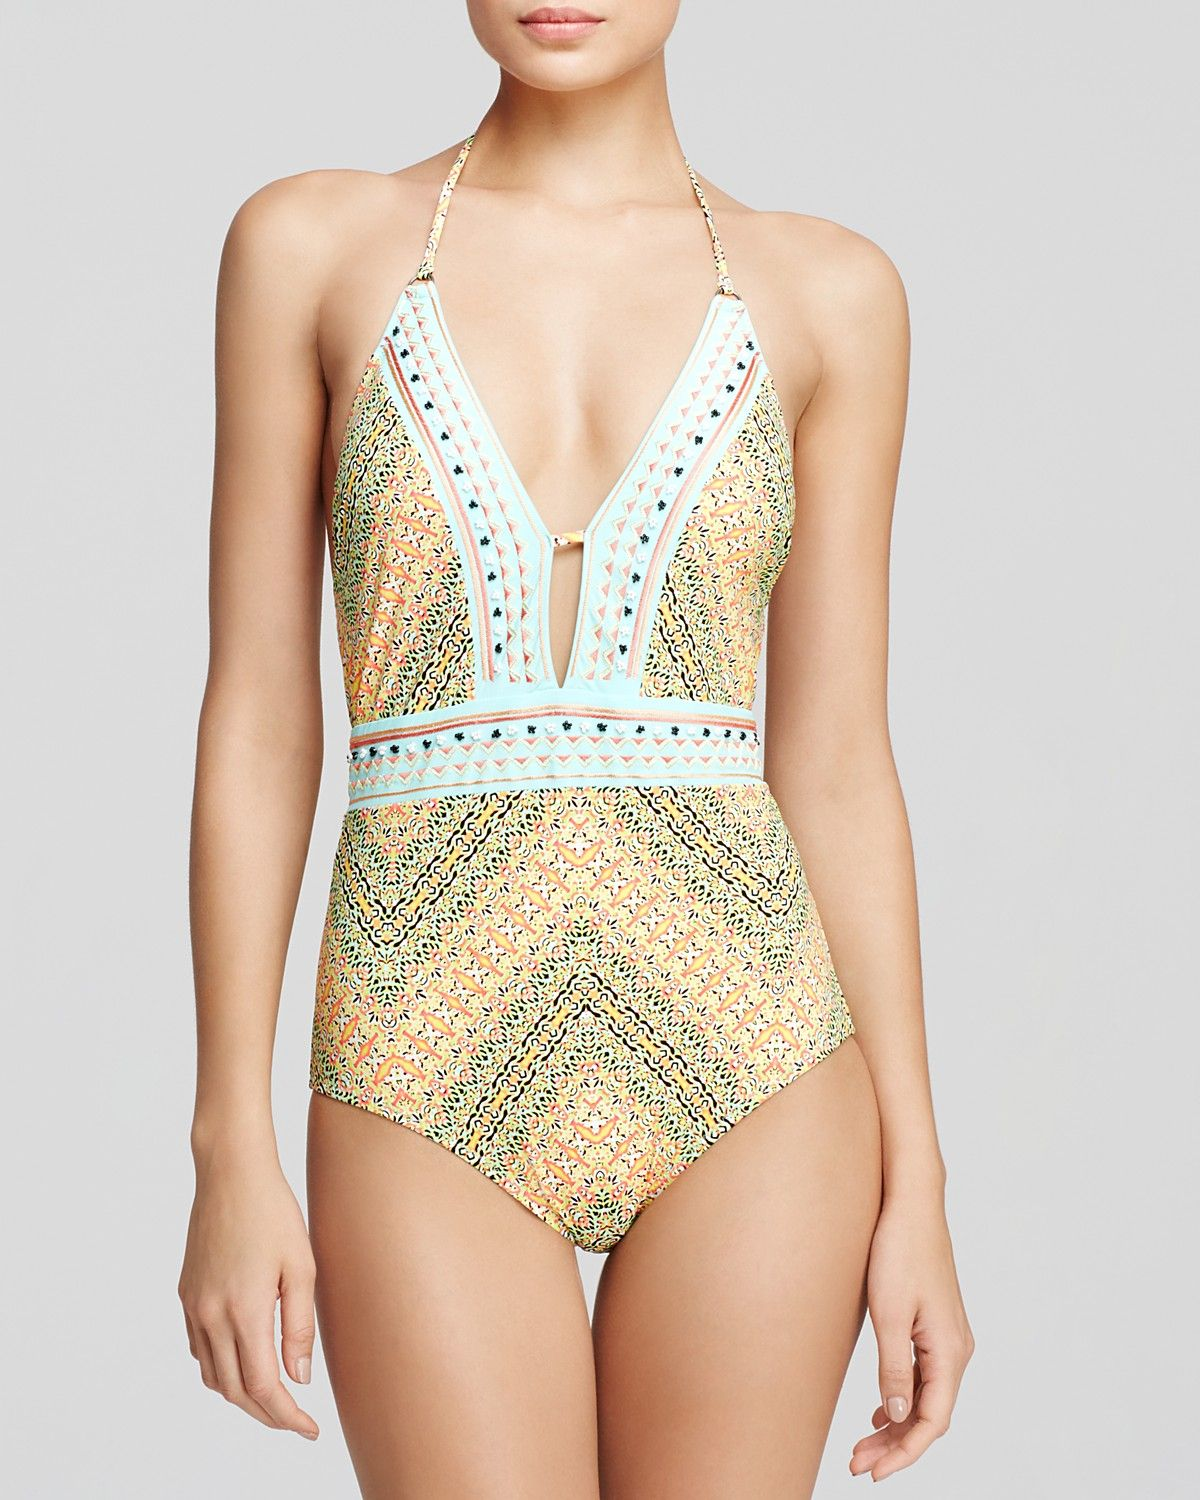 Nanette Lepore Paso Robles One Piece Swimsuit Bloomingdale S Swimsuits One Piece Women Swimsuits